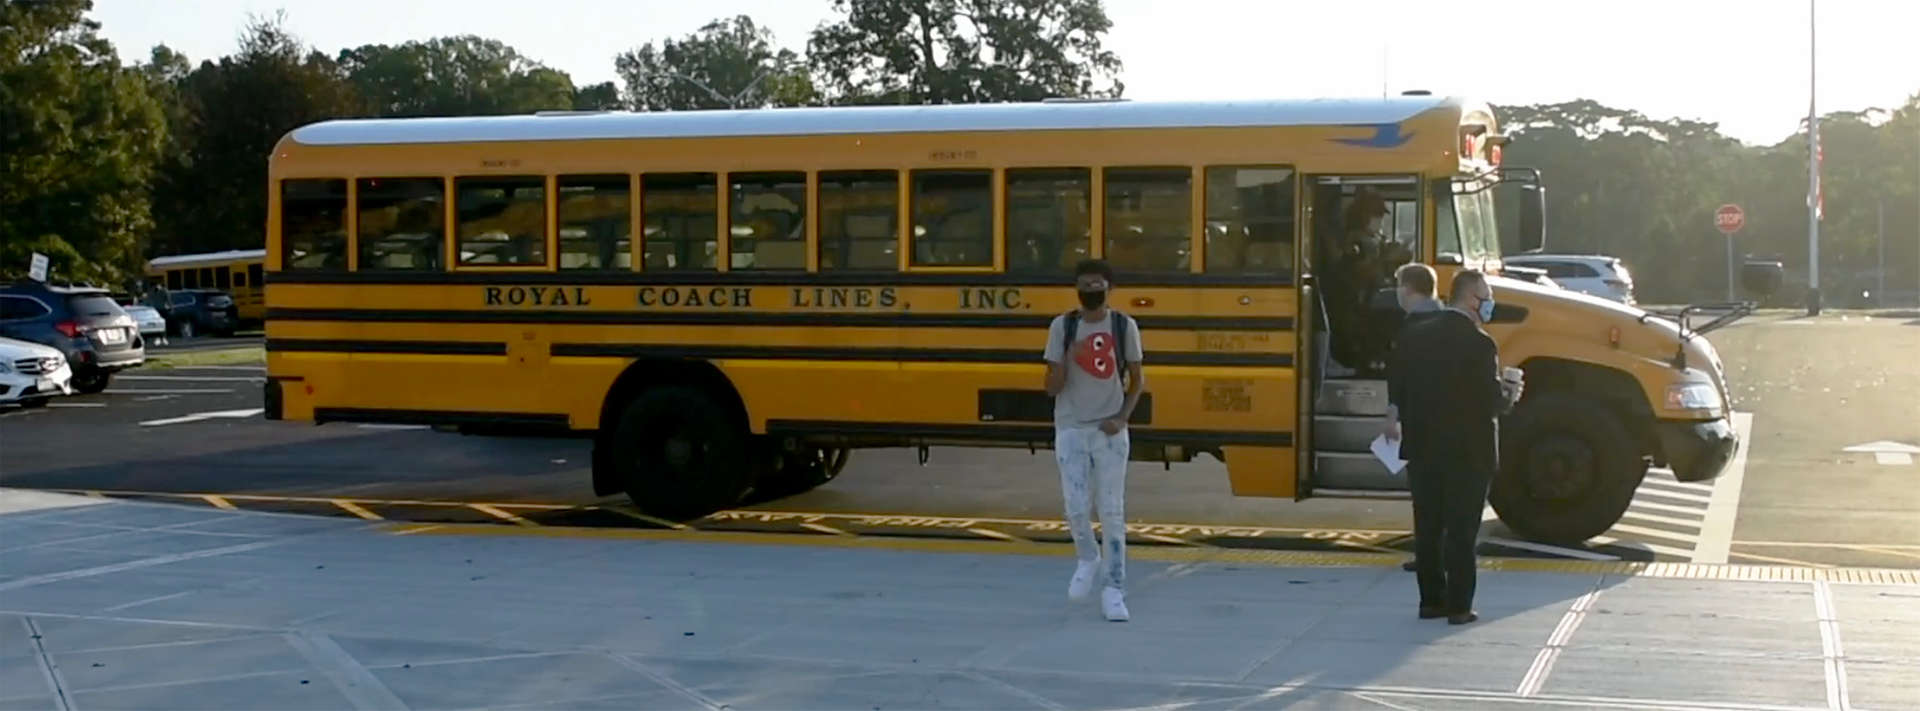 Boy exiting bus parked on curb